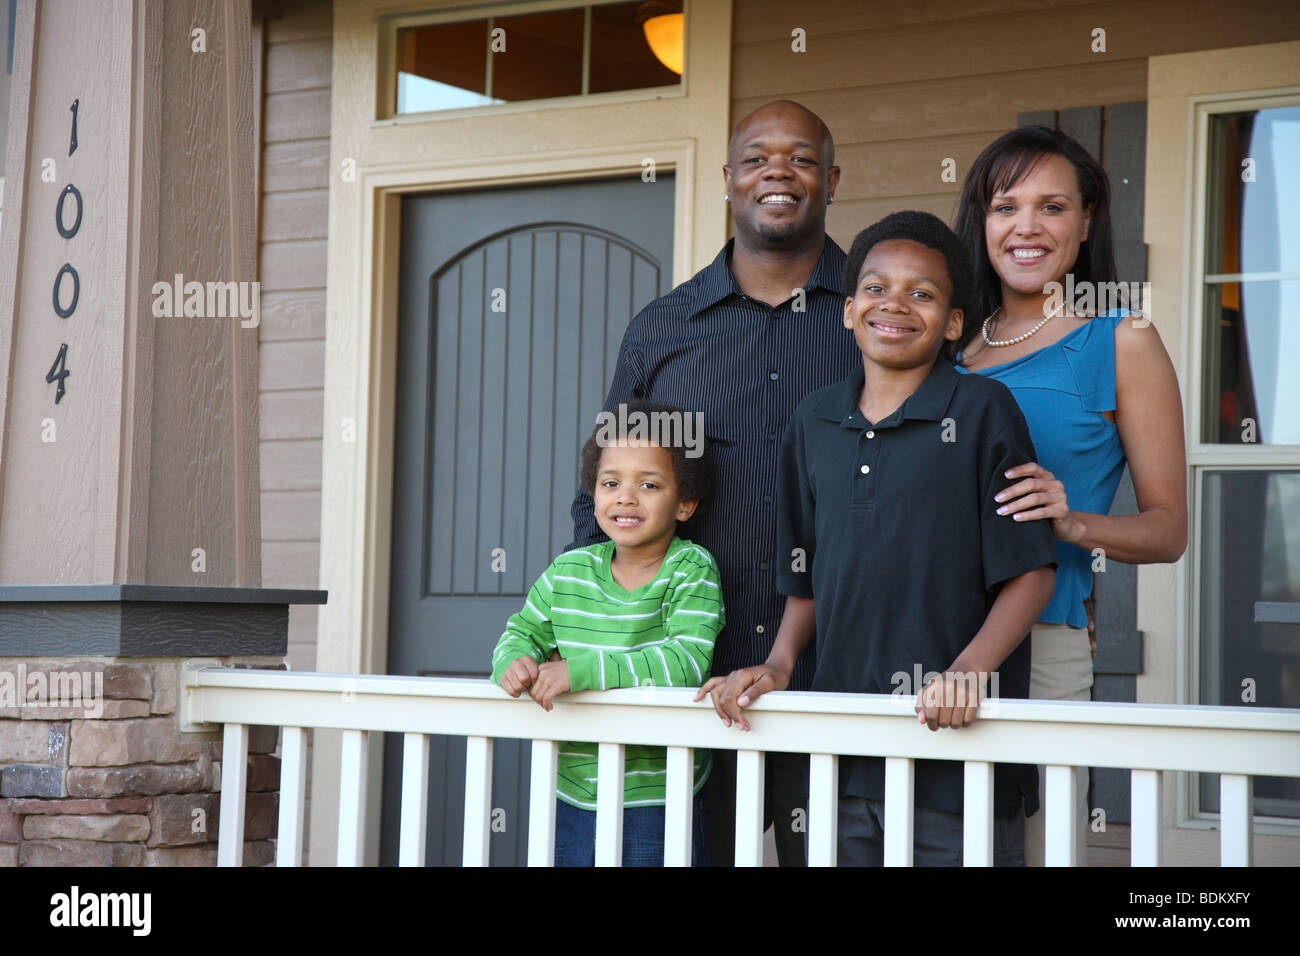 African American family on porch - Stock Image